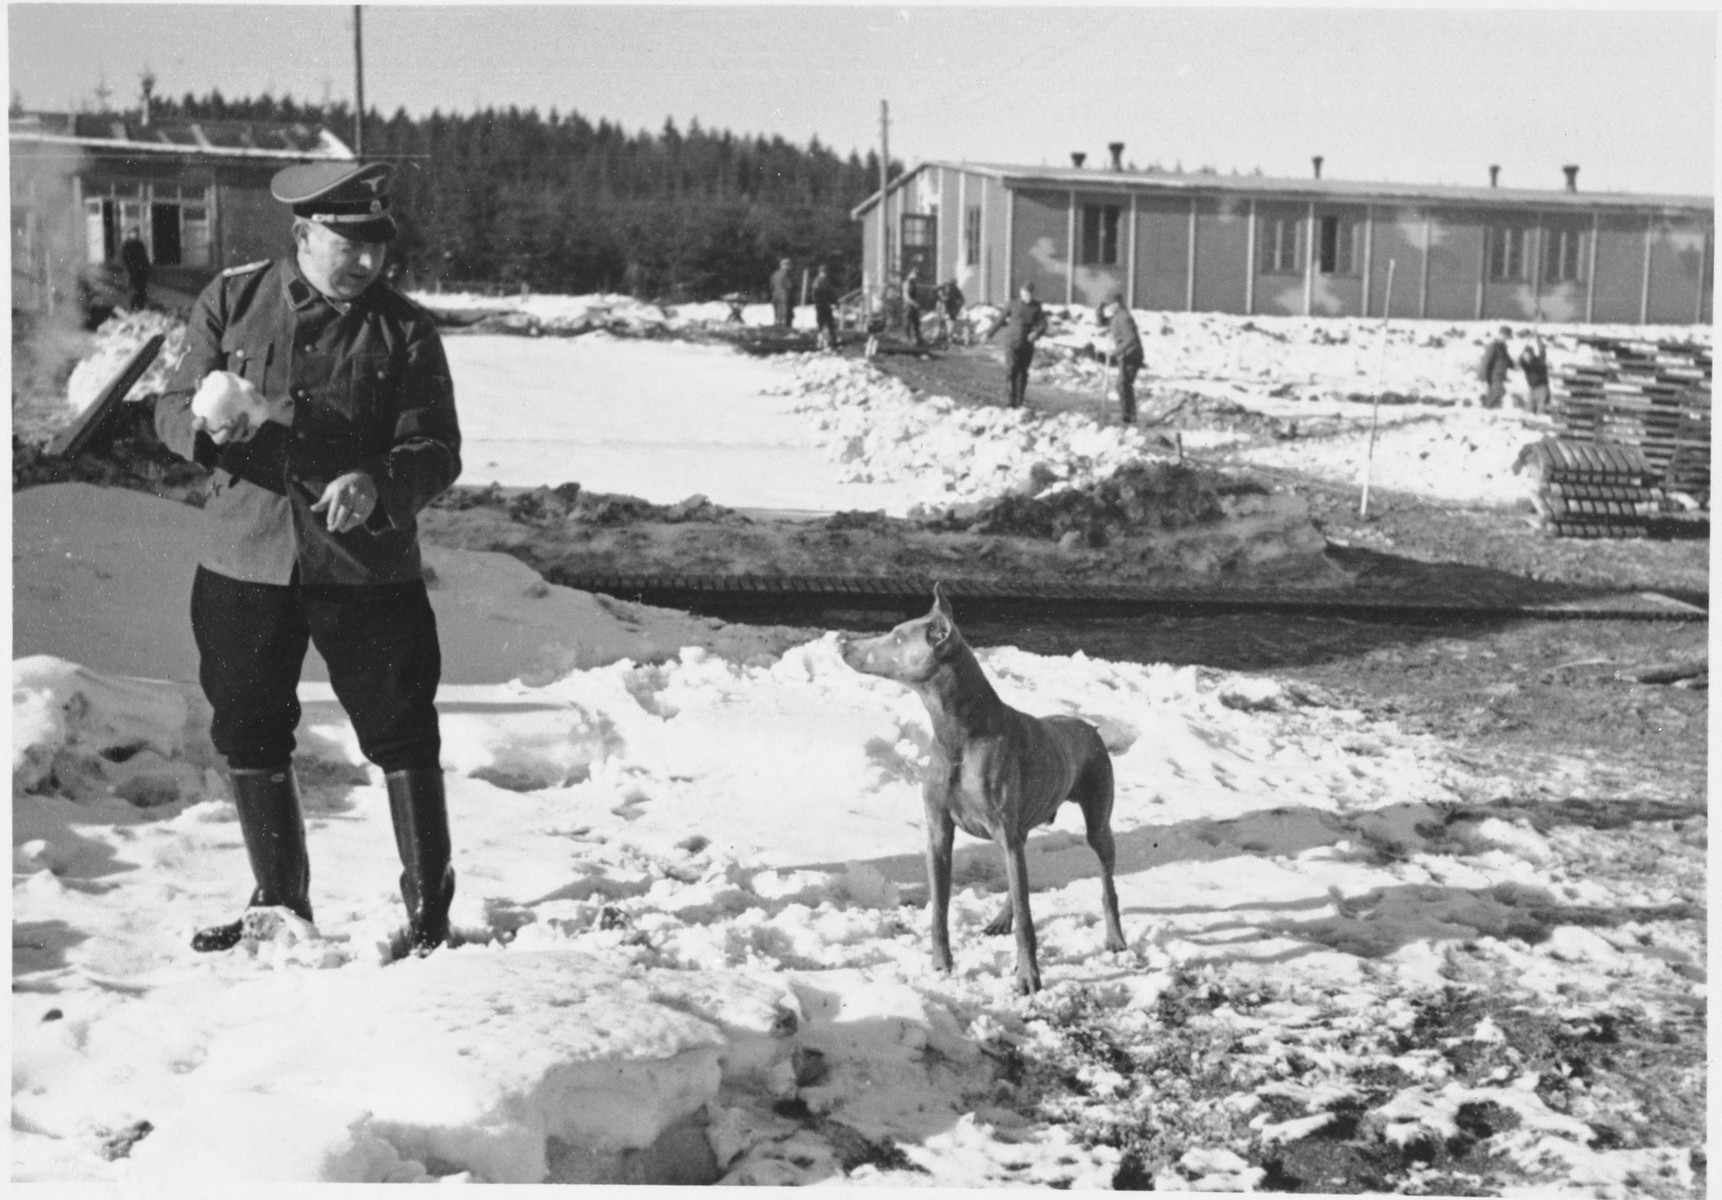 A Nazi official plays with his dog in the snow at Hinzert (sub-camp of Buchenwald)  while prisoners can be seen working in the background.